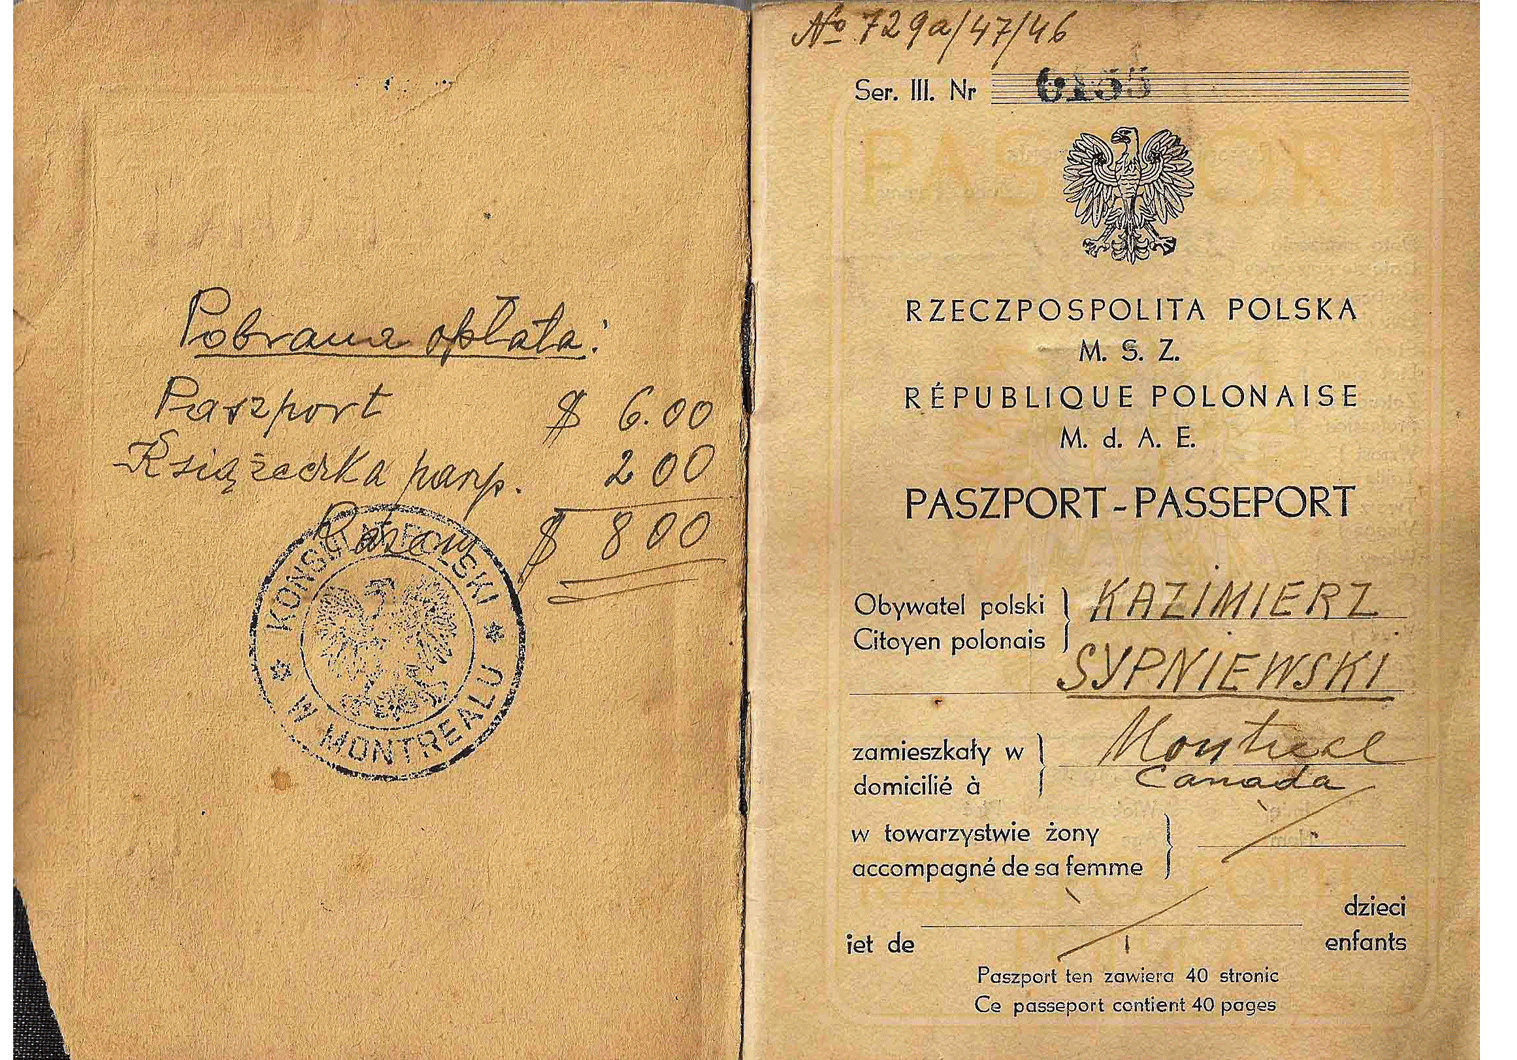 1946 Polish passport